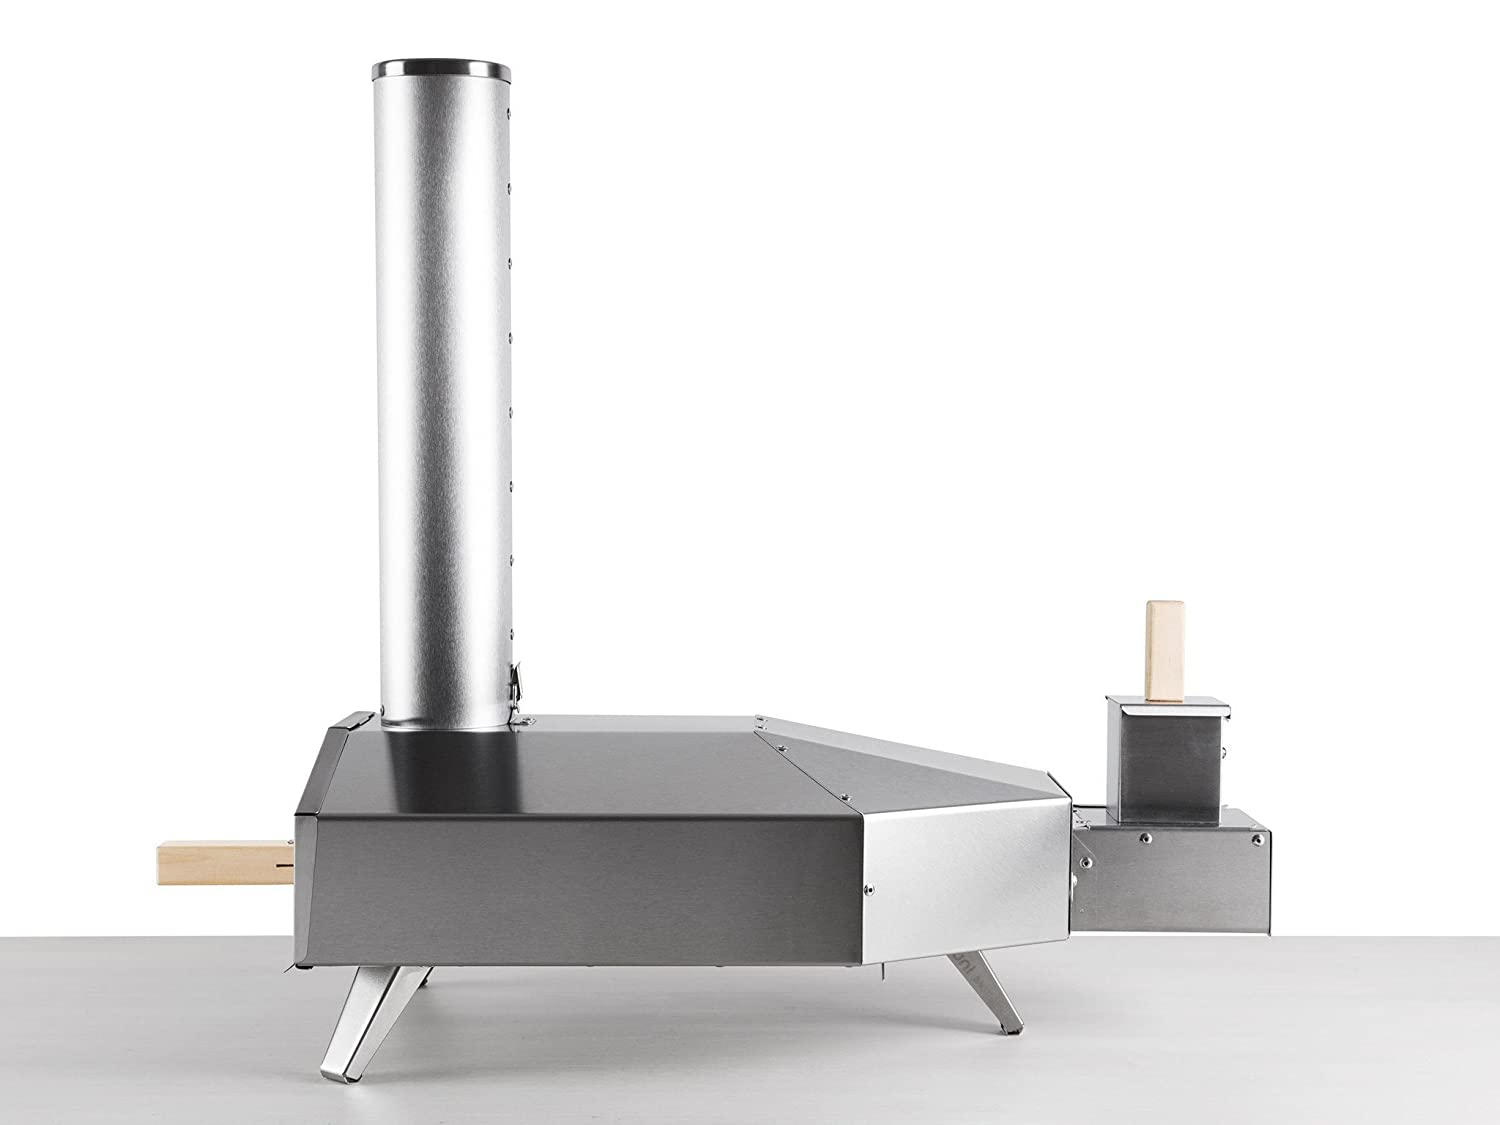 Amazon.com : Ooni 3 Portable Wood Pellet Pizza Oven W/ Stone and ...